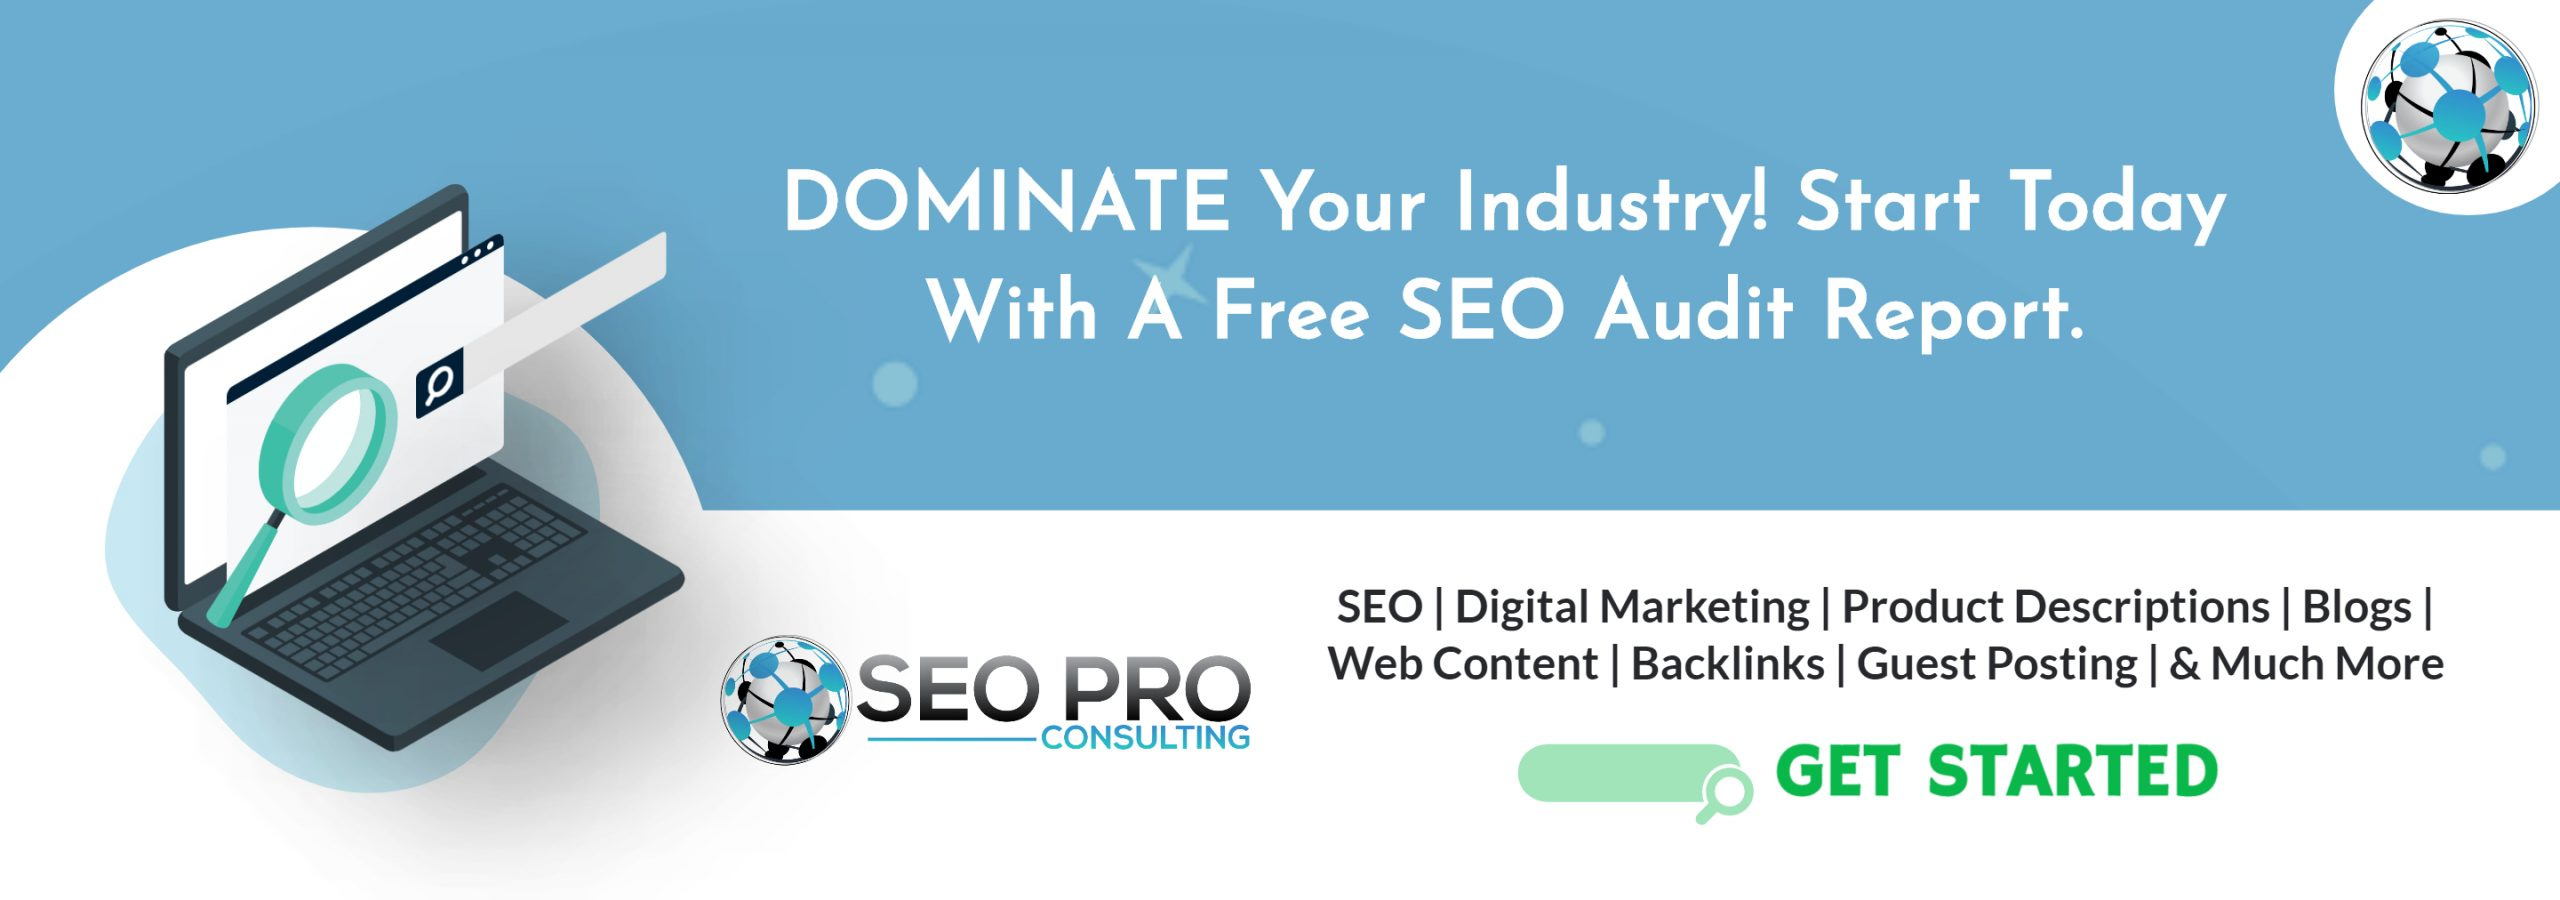 seo audit guide blog post banner immage